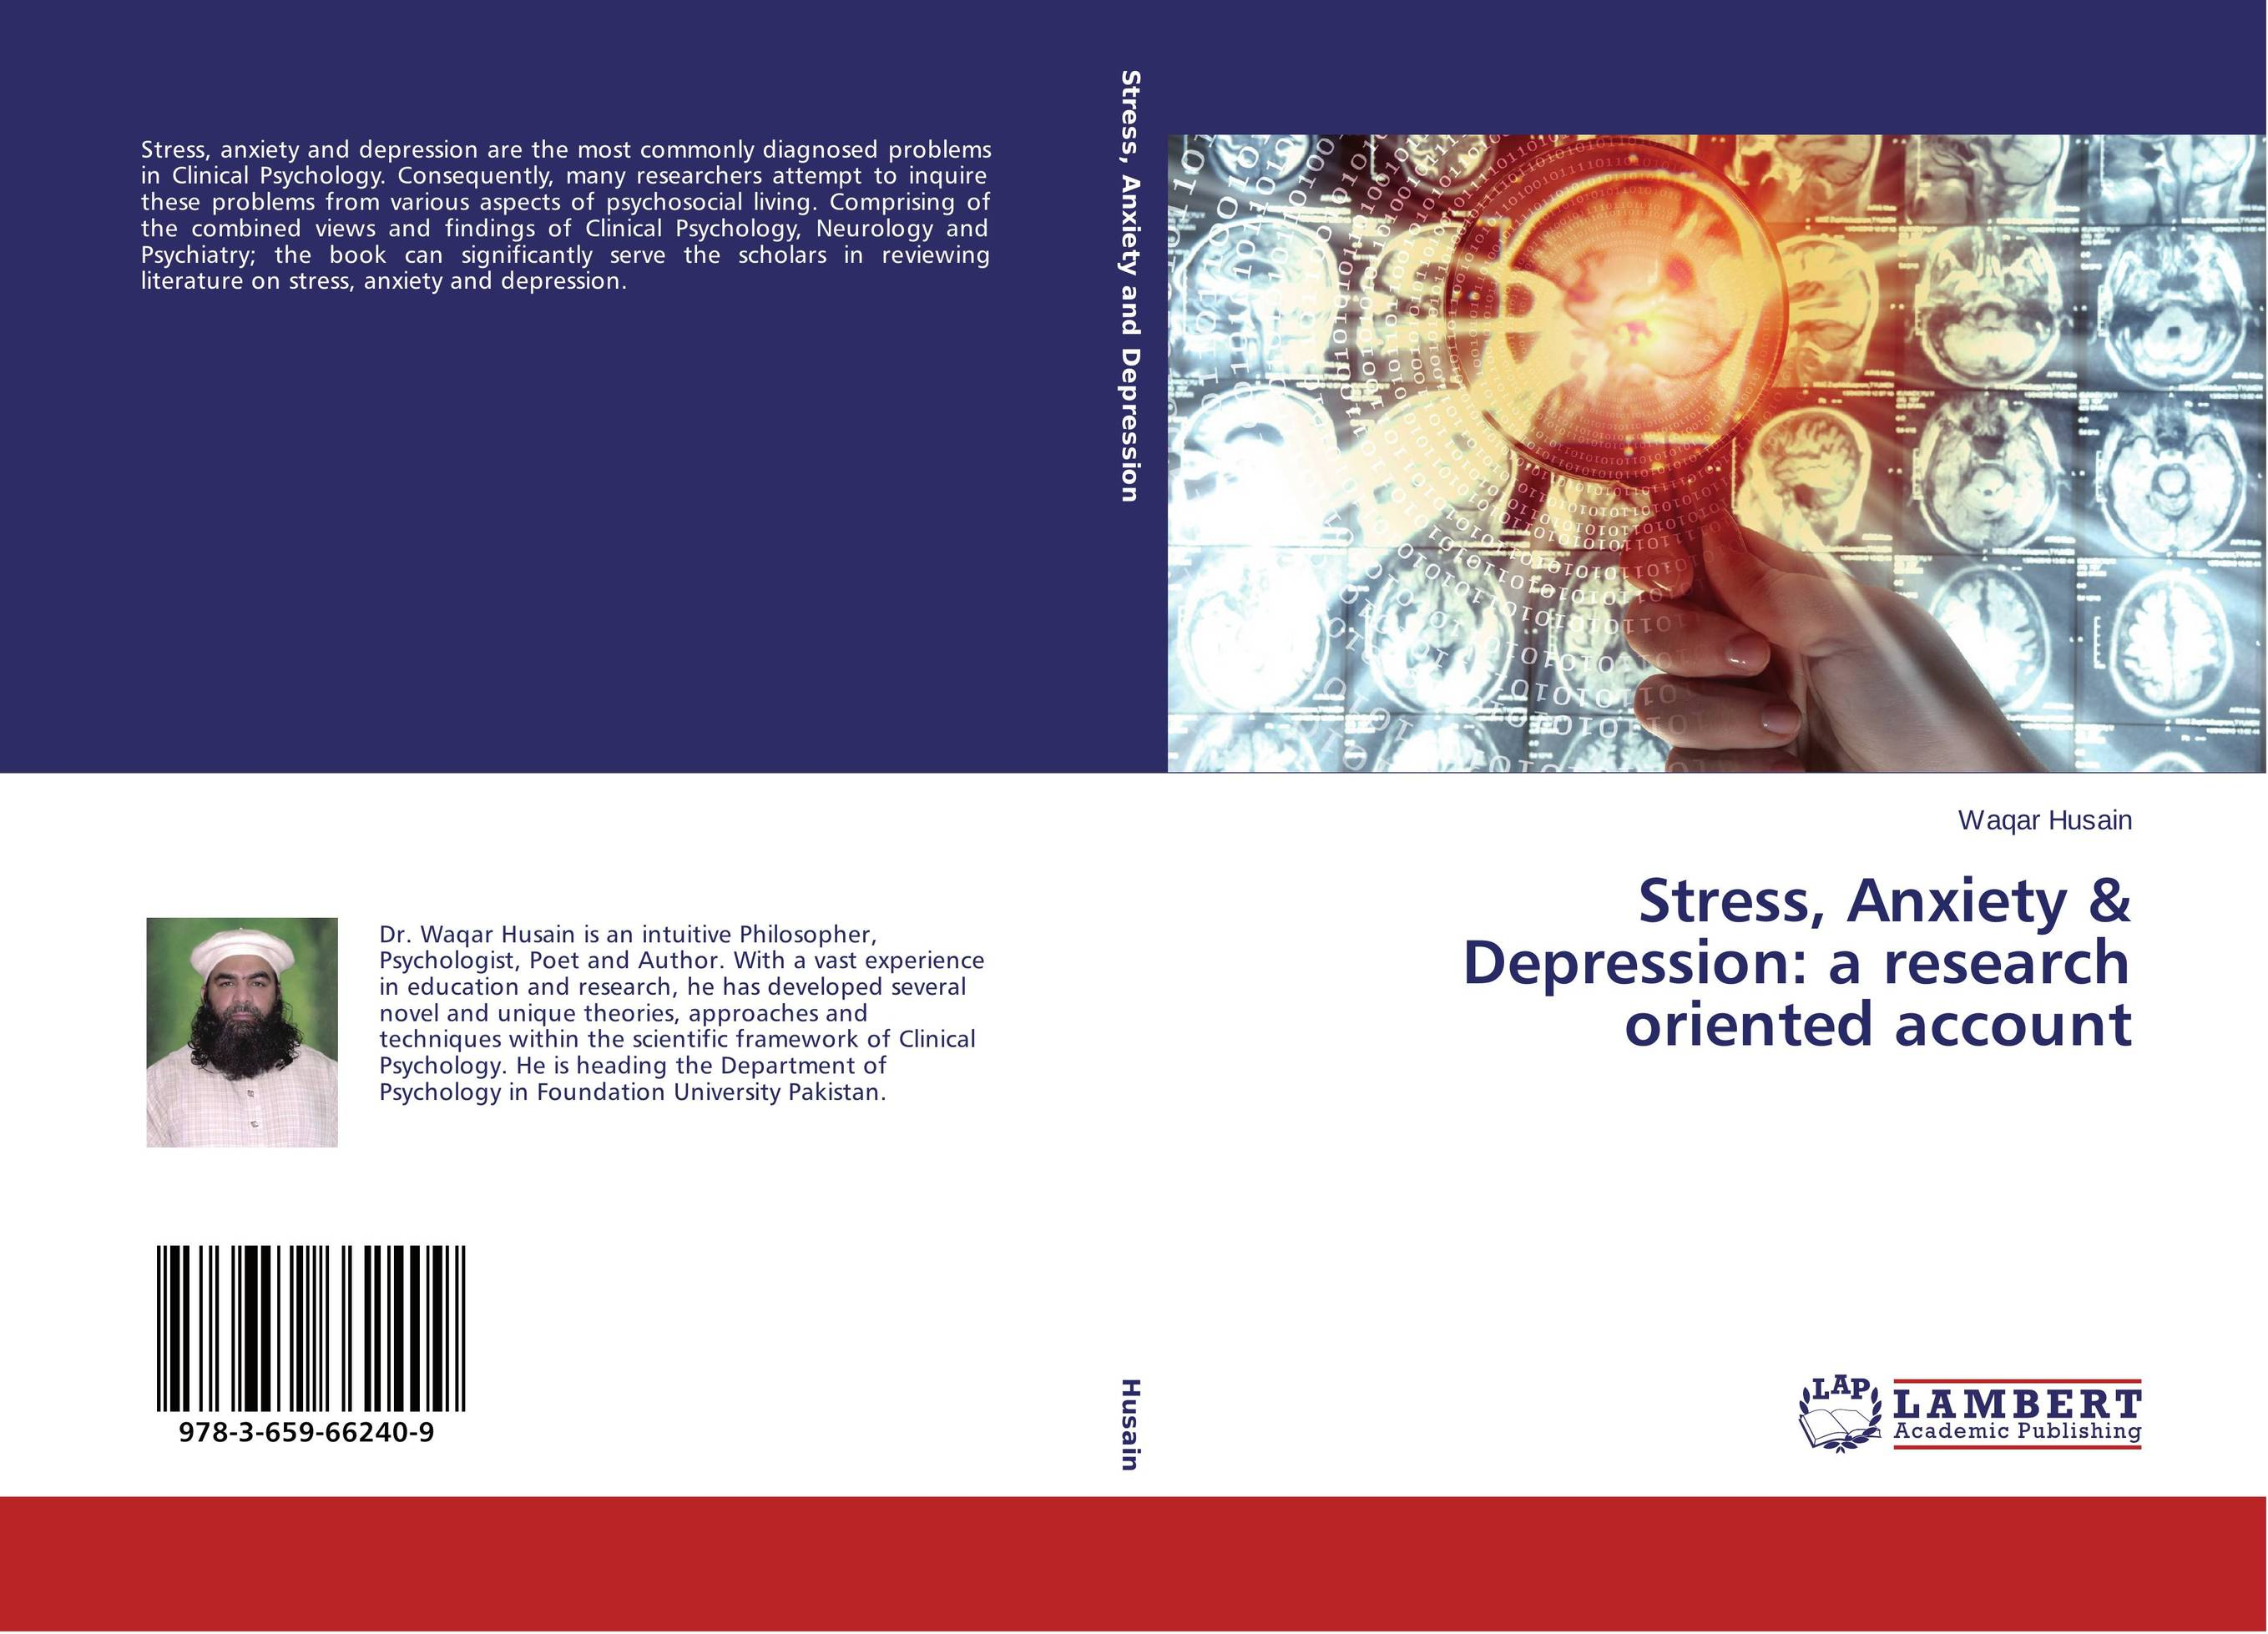 research report on depression and anxiety Anxiety and depression in nowadays communities, socialization is the main reason for living and enjoying life, but a group of people may disagree with that, because they may have depression at high levels.